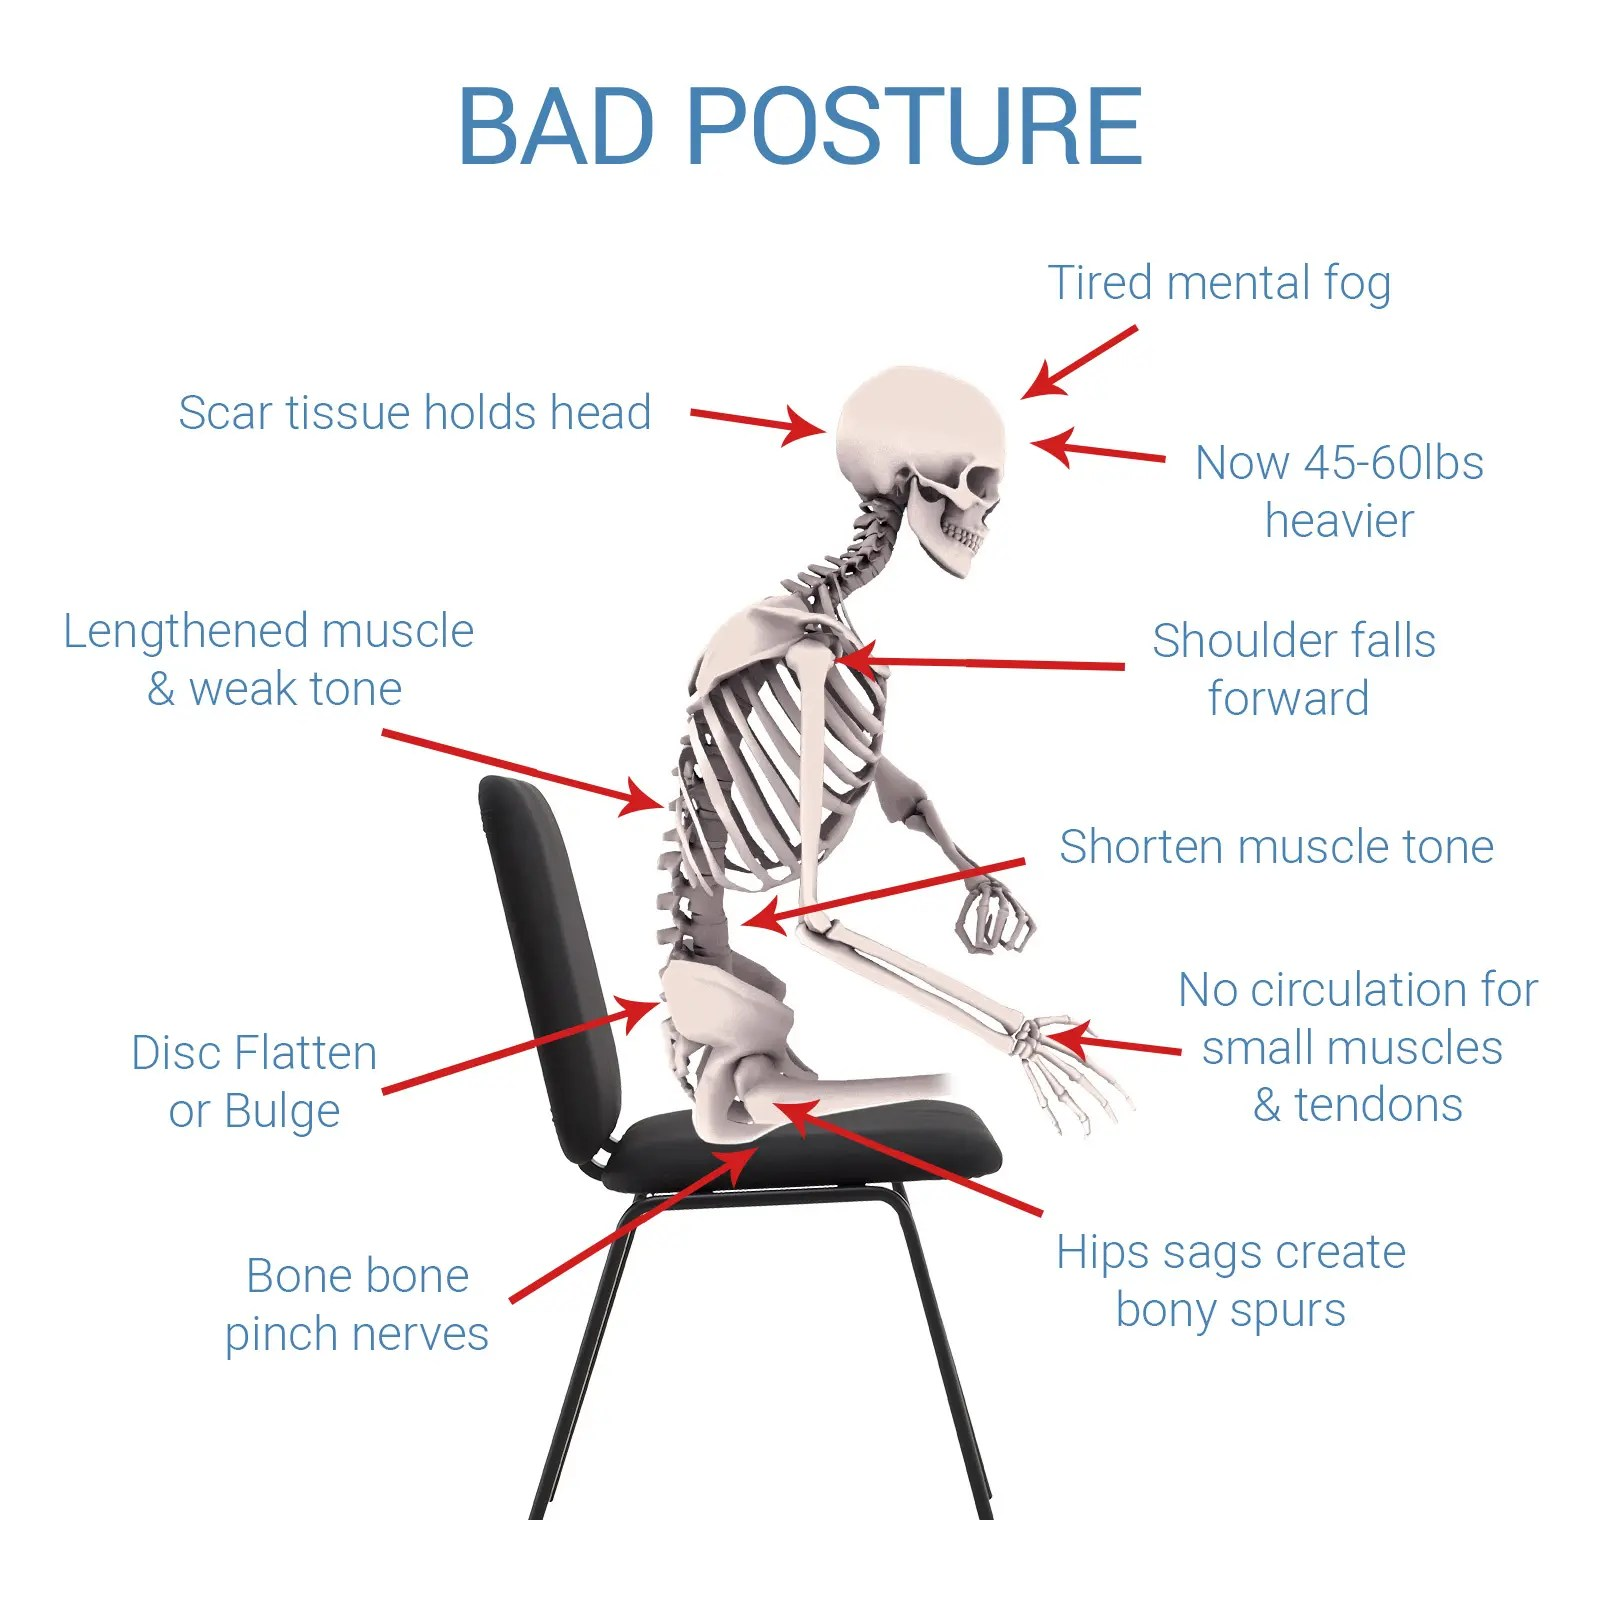 bad posture in chair sears high chairs canada sitts cushion lower back pain relief and lumbar